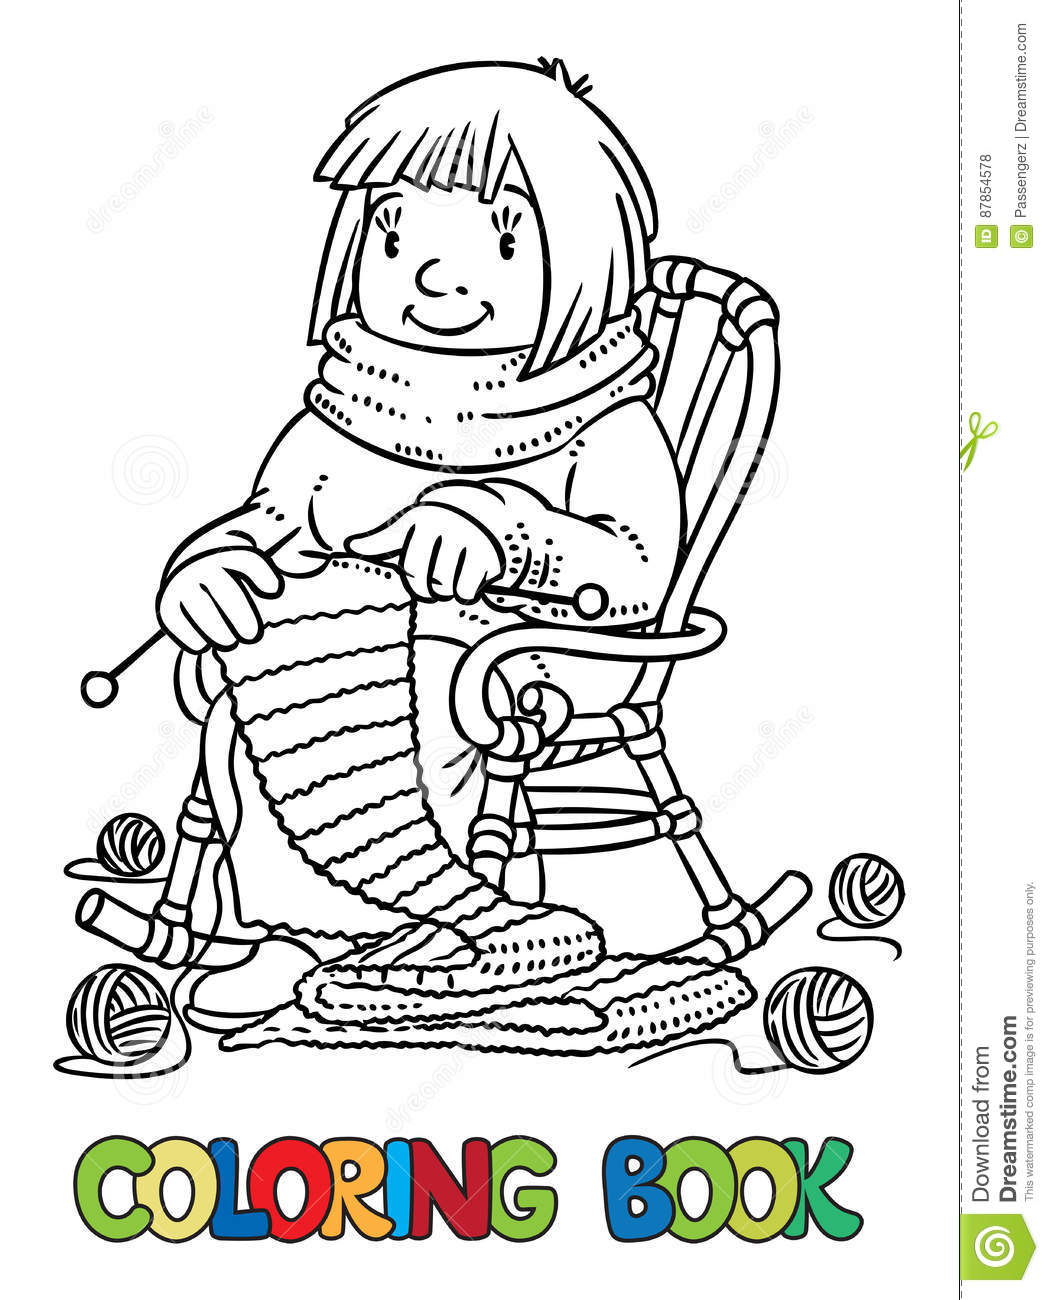 Coloring Book With Funny Knitter Women. Stock Vector - Illustration ...